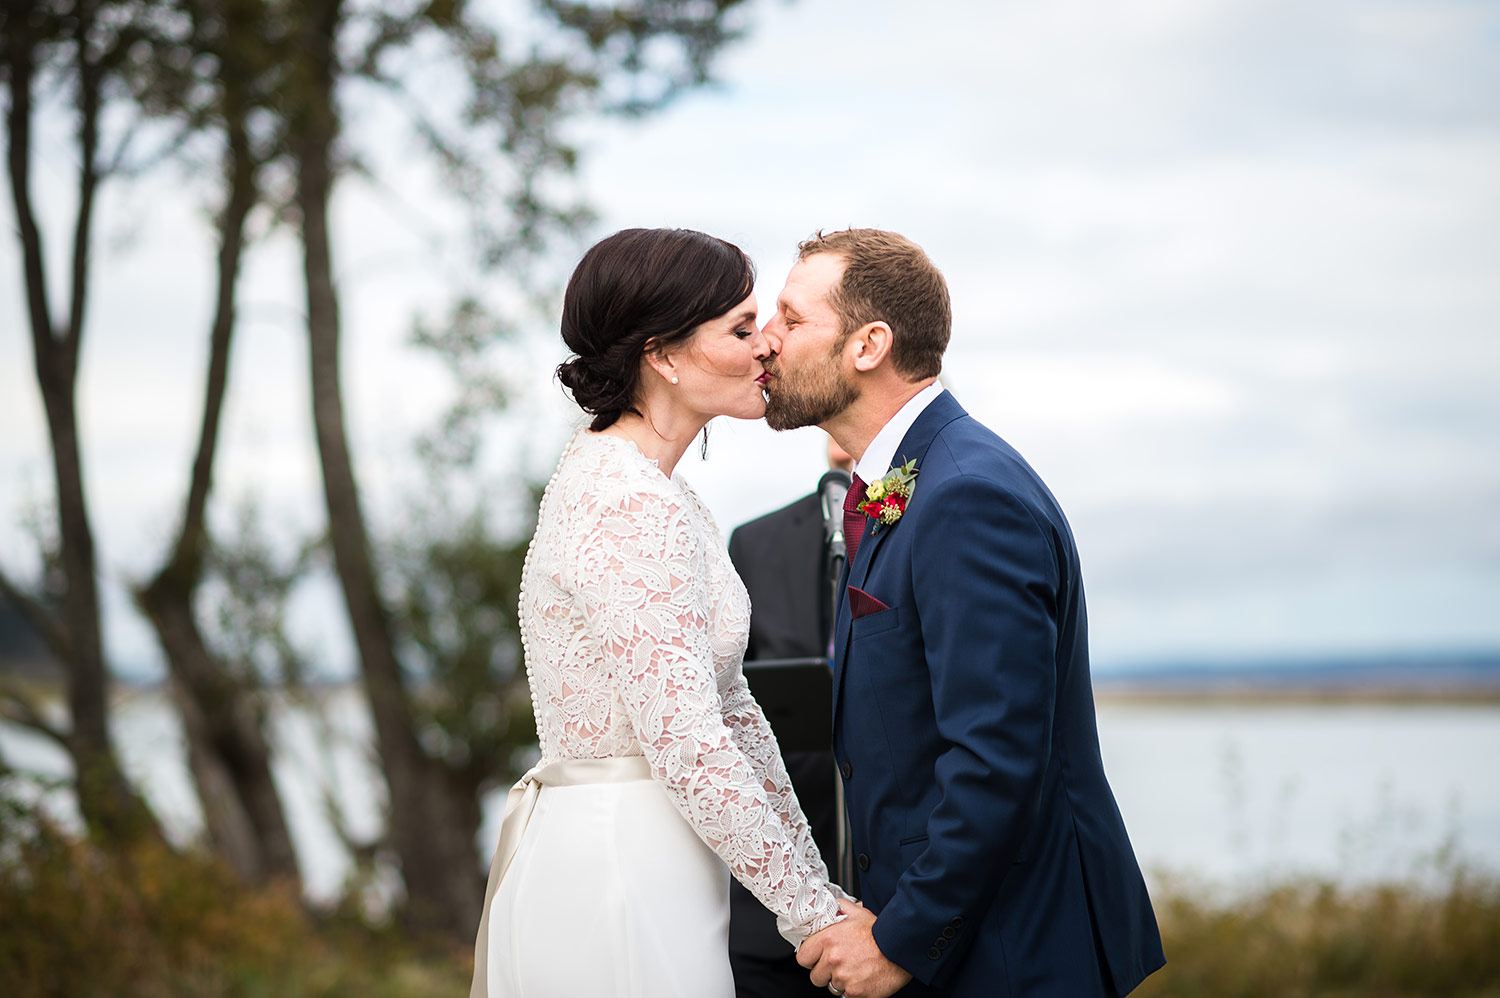 Bride and Groom kiss outside at the end of a Whidbey Island wedding ceremony